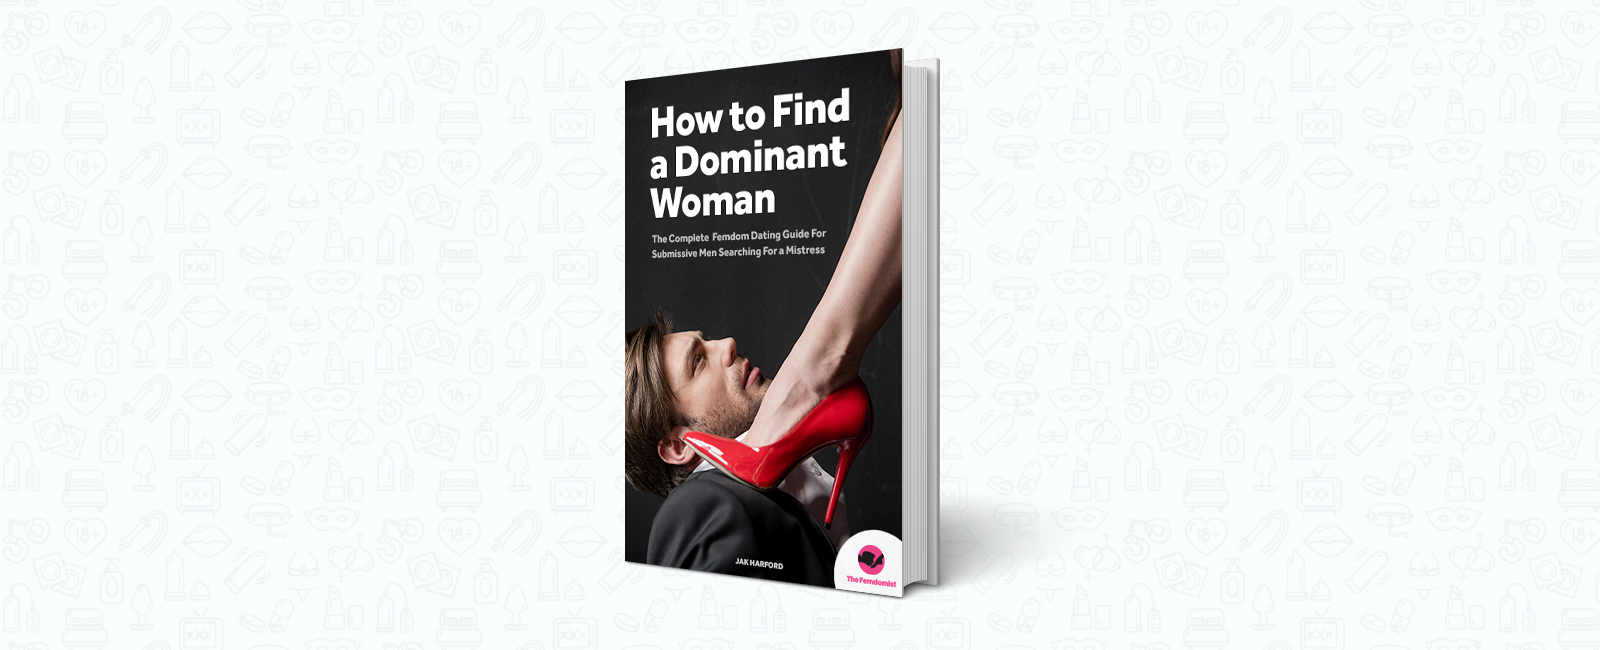 Now Available: Paperback Copies of How to Find a Dominant Woman